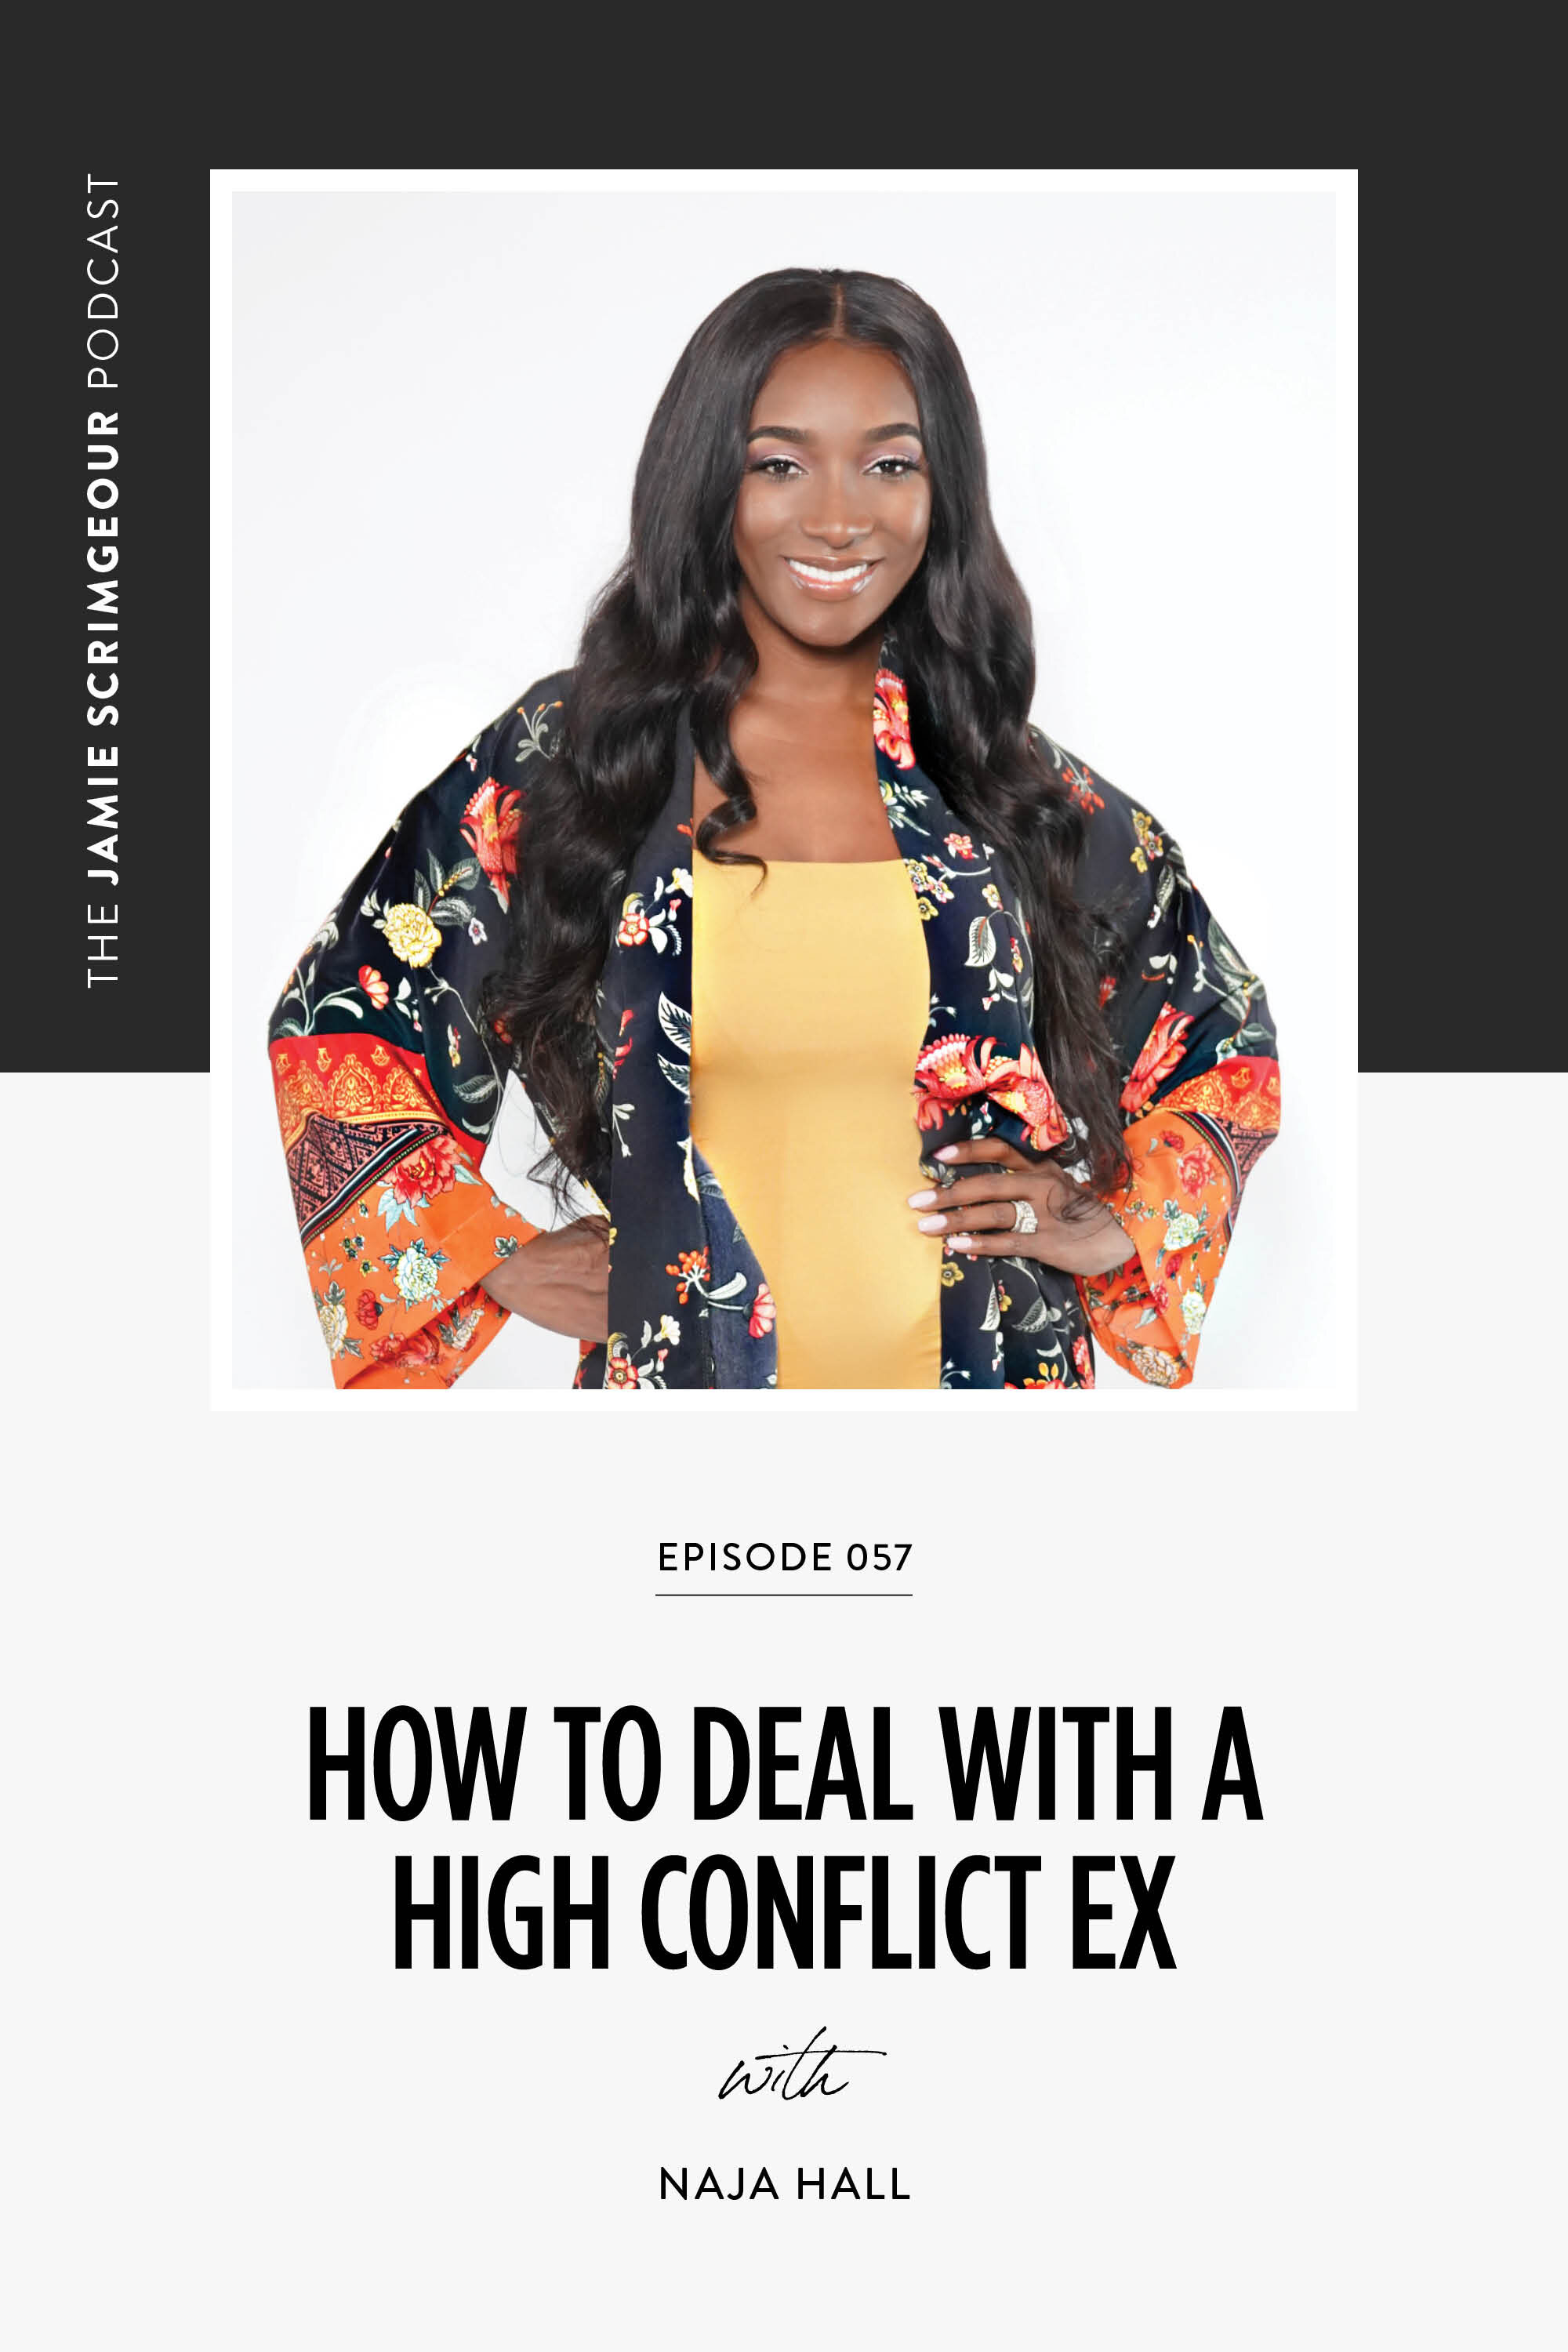 Jamie Scrimgeour Podcast Ep. 057: How To Deal With A High Conflict Ex